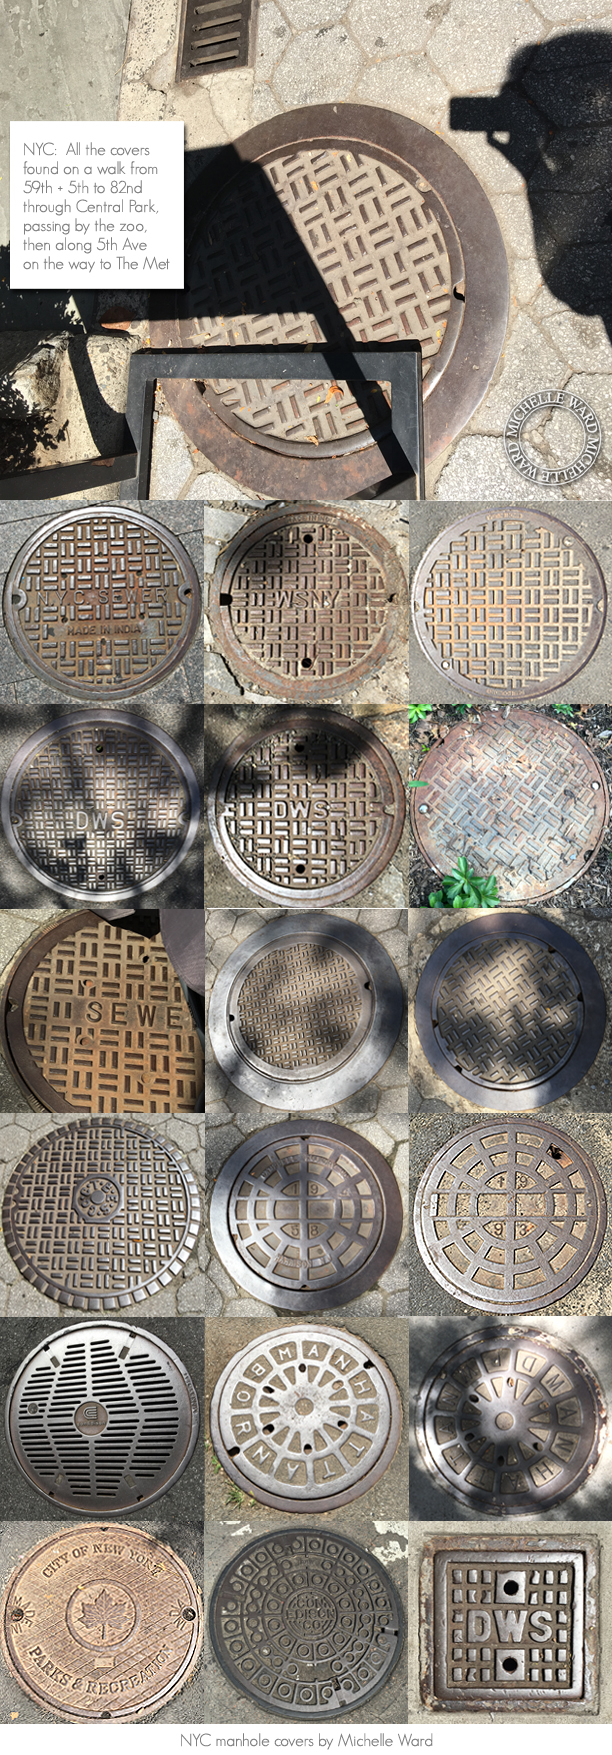 MW NYC Upper East Manholes